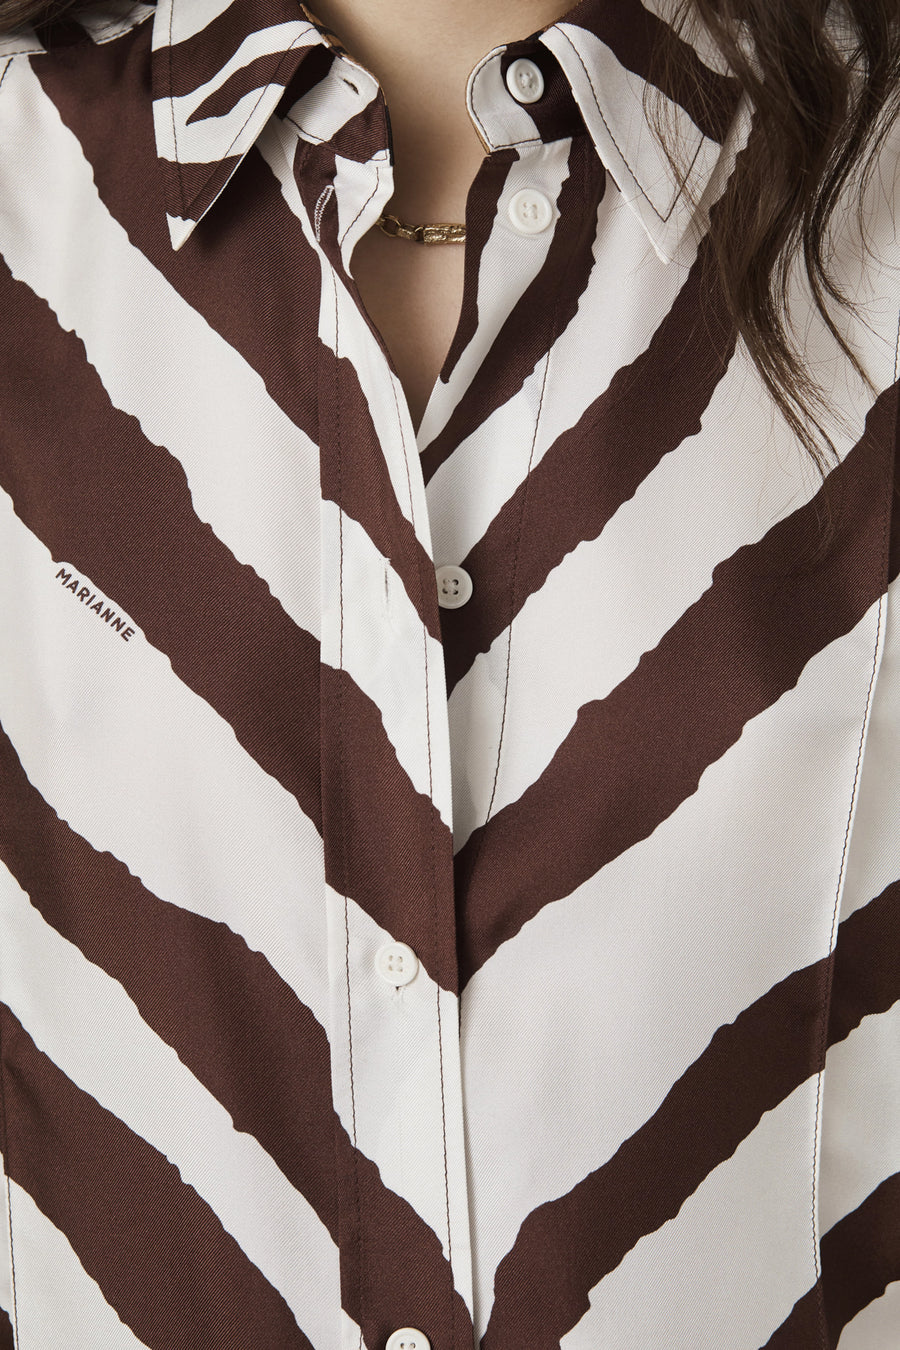 CLASSIC CHOCOLATE PRINT - Marianne - Luxury Women's Silk Tailored Shirts and Scarves